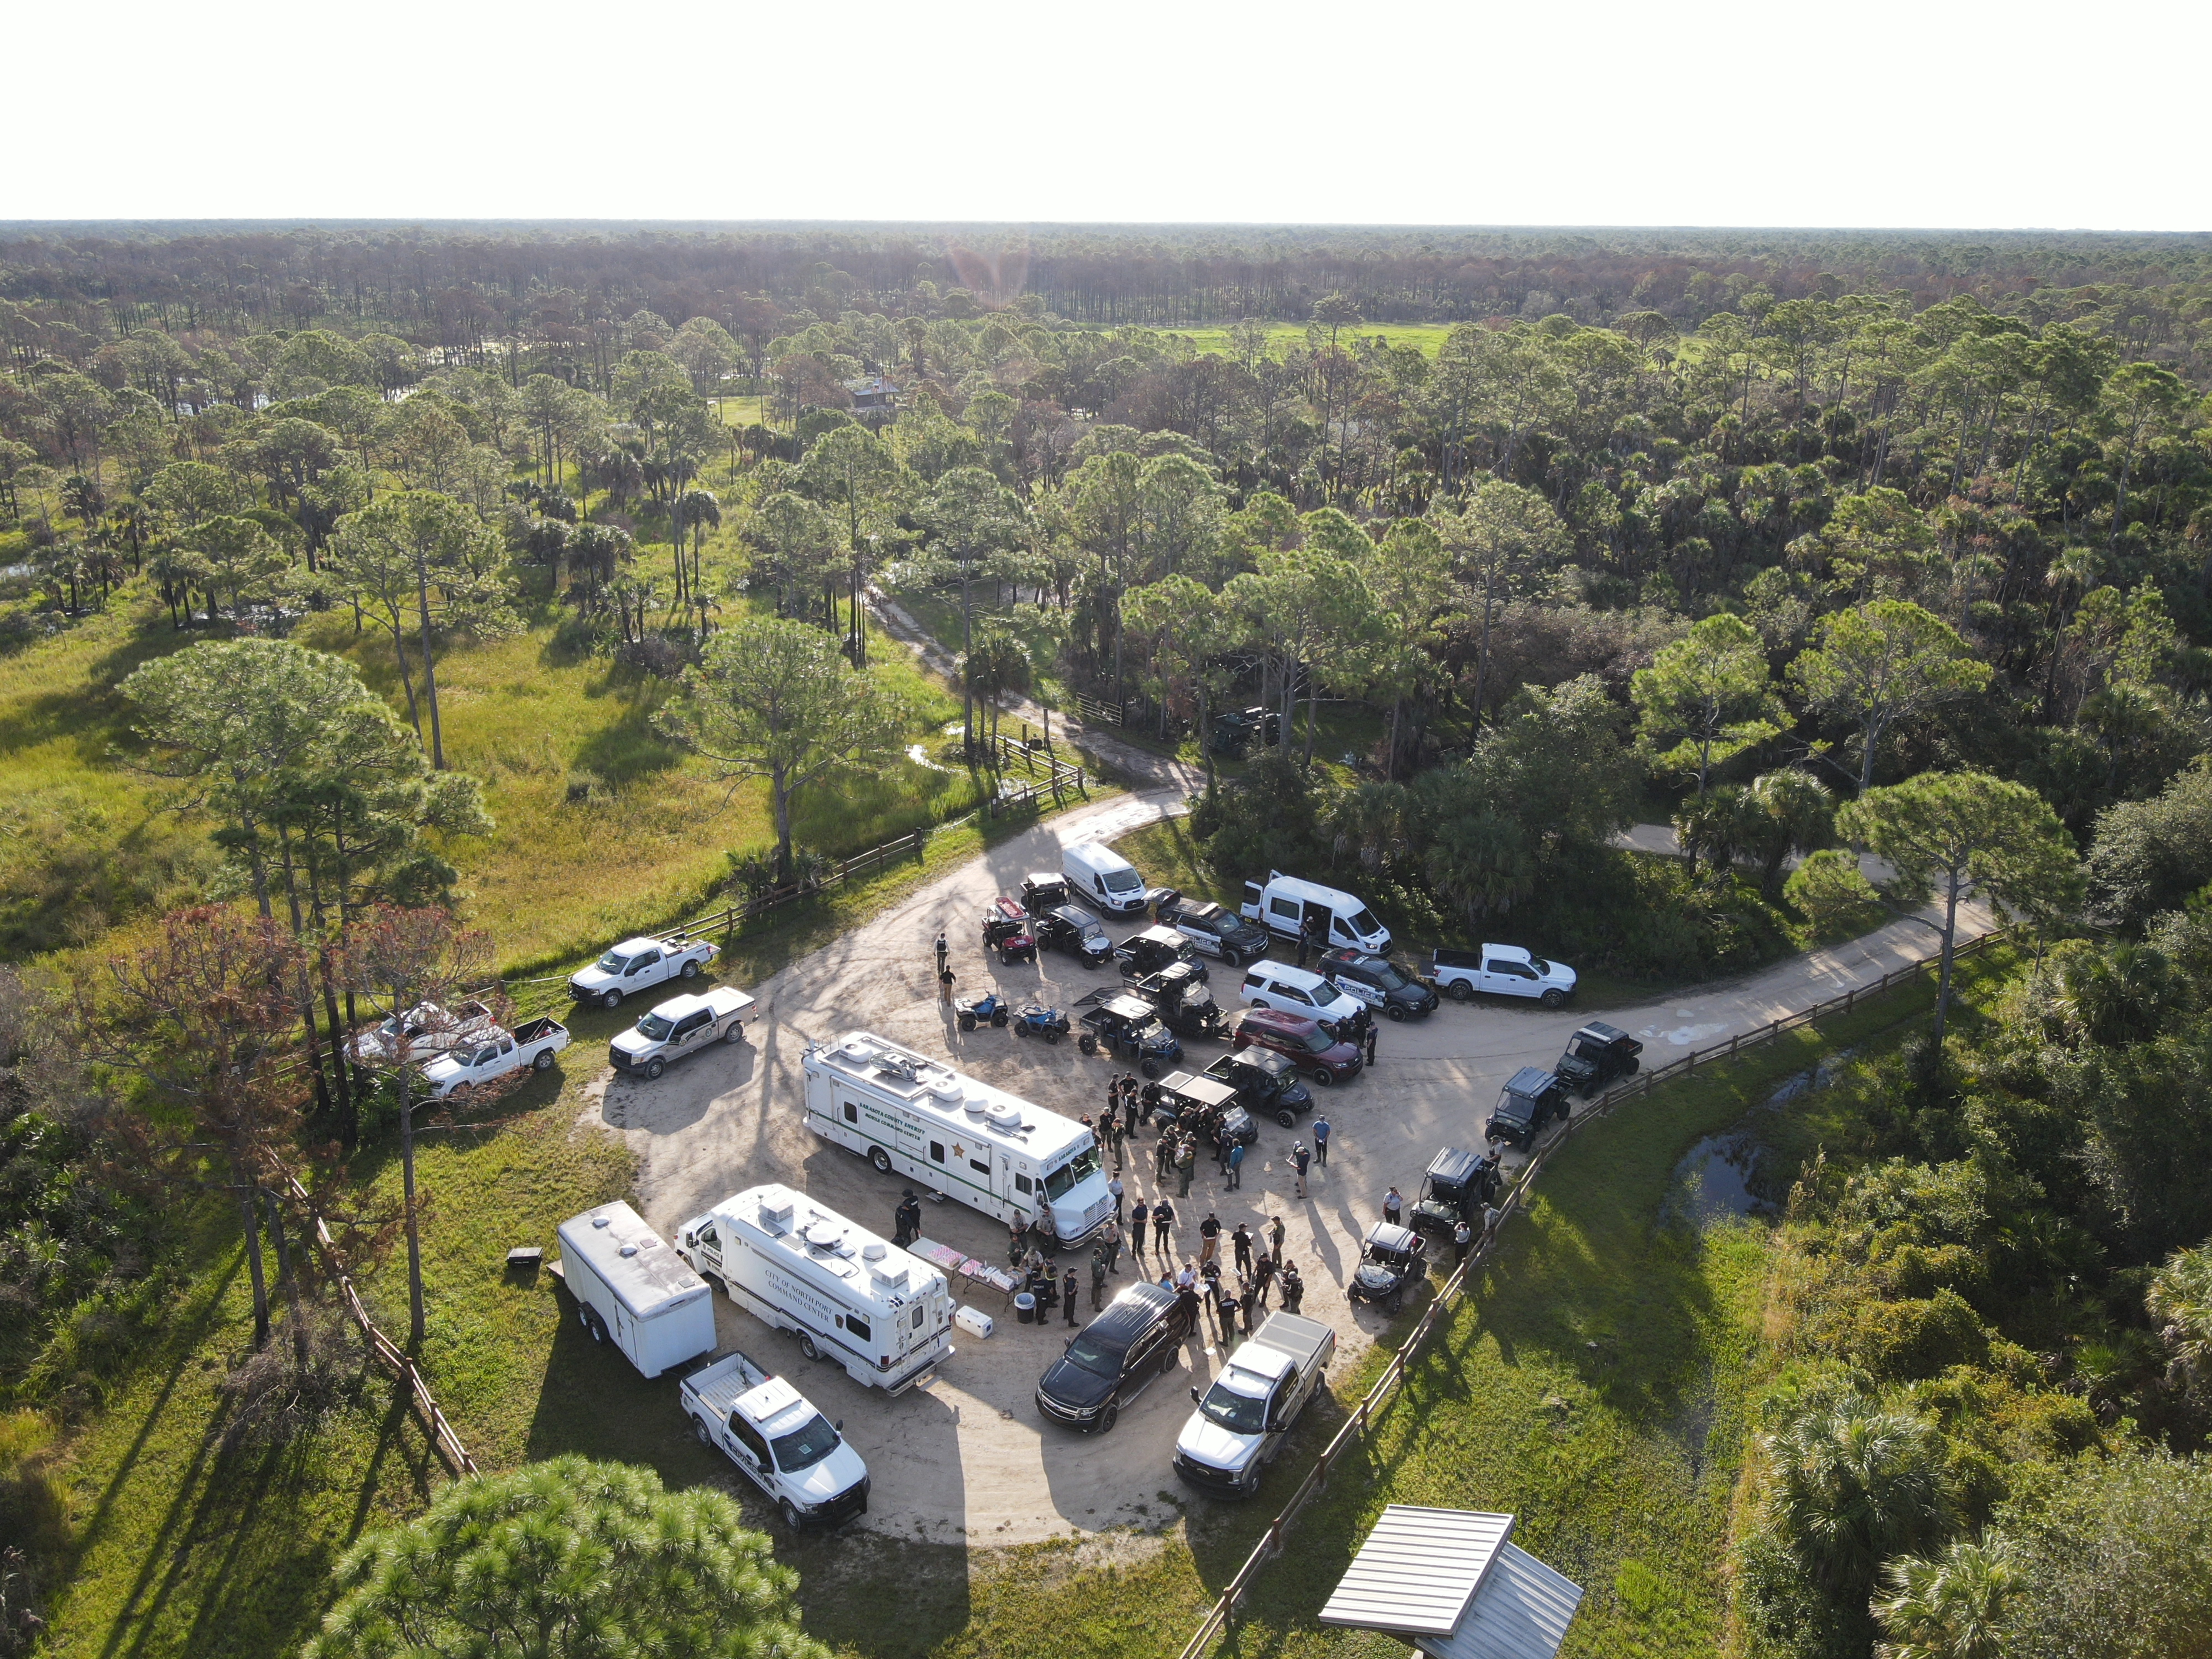 Police in North Port, Florida, have been searching for Brian Laundrie at the Carlton Reserve.